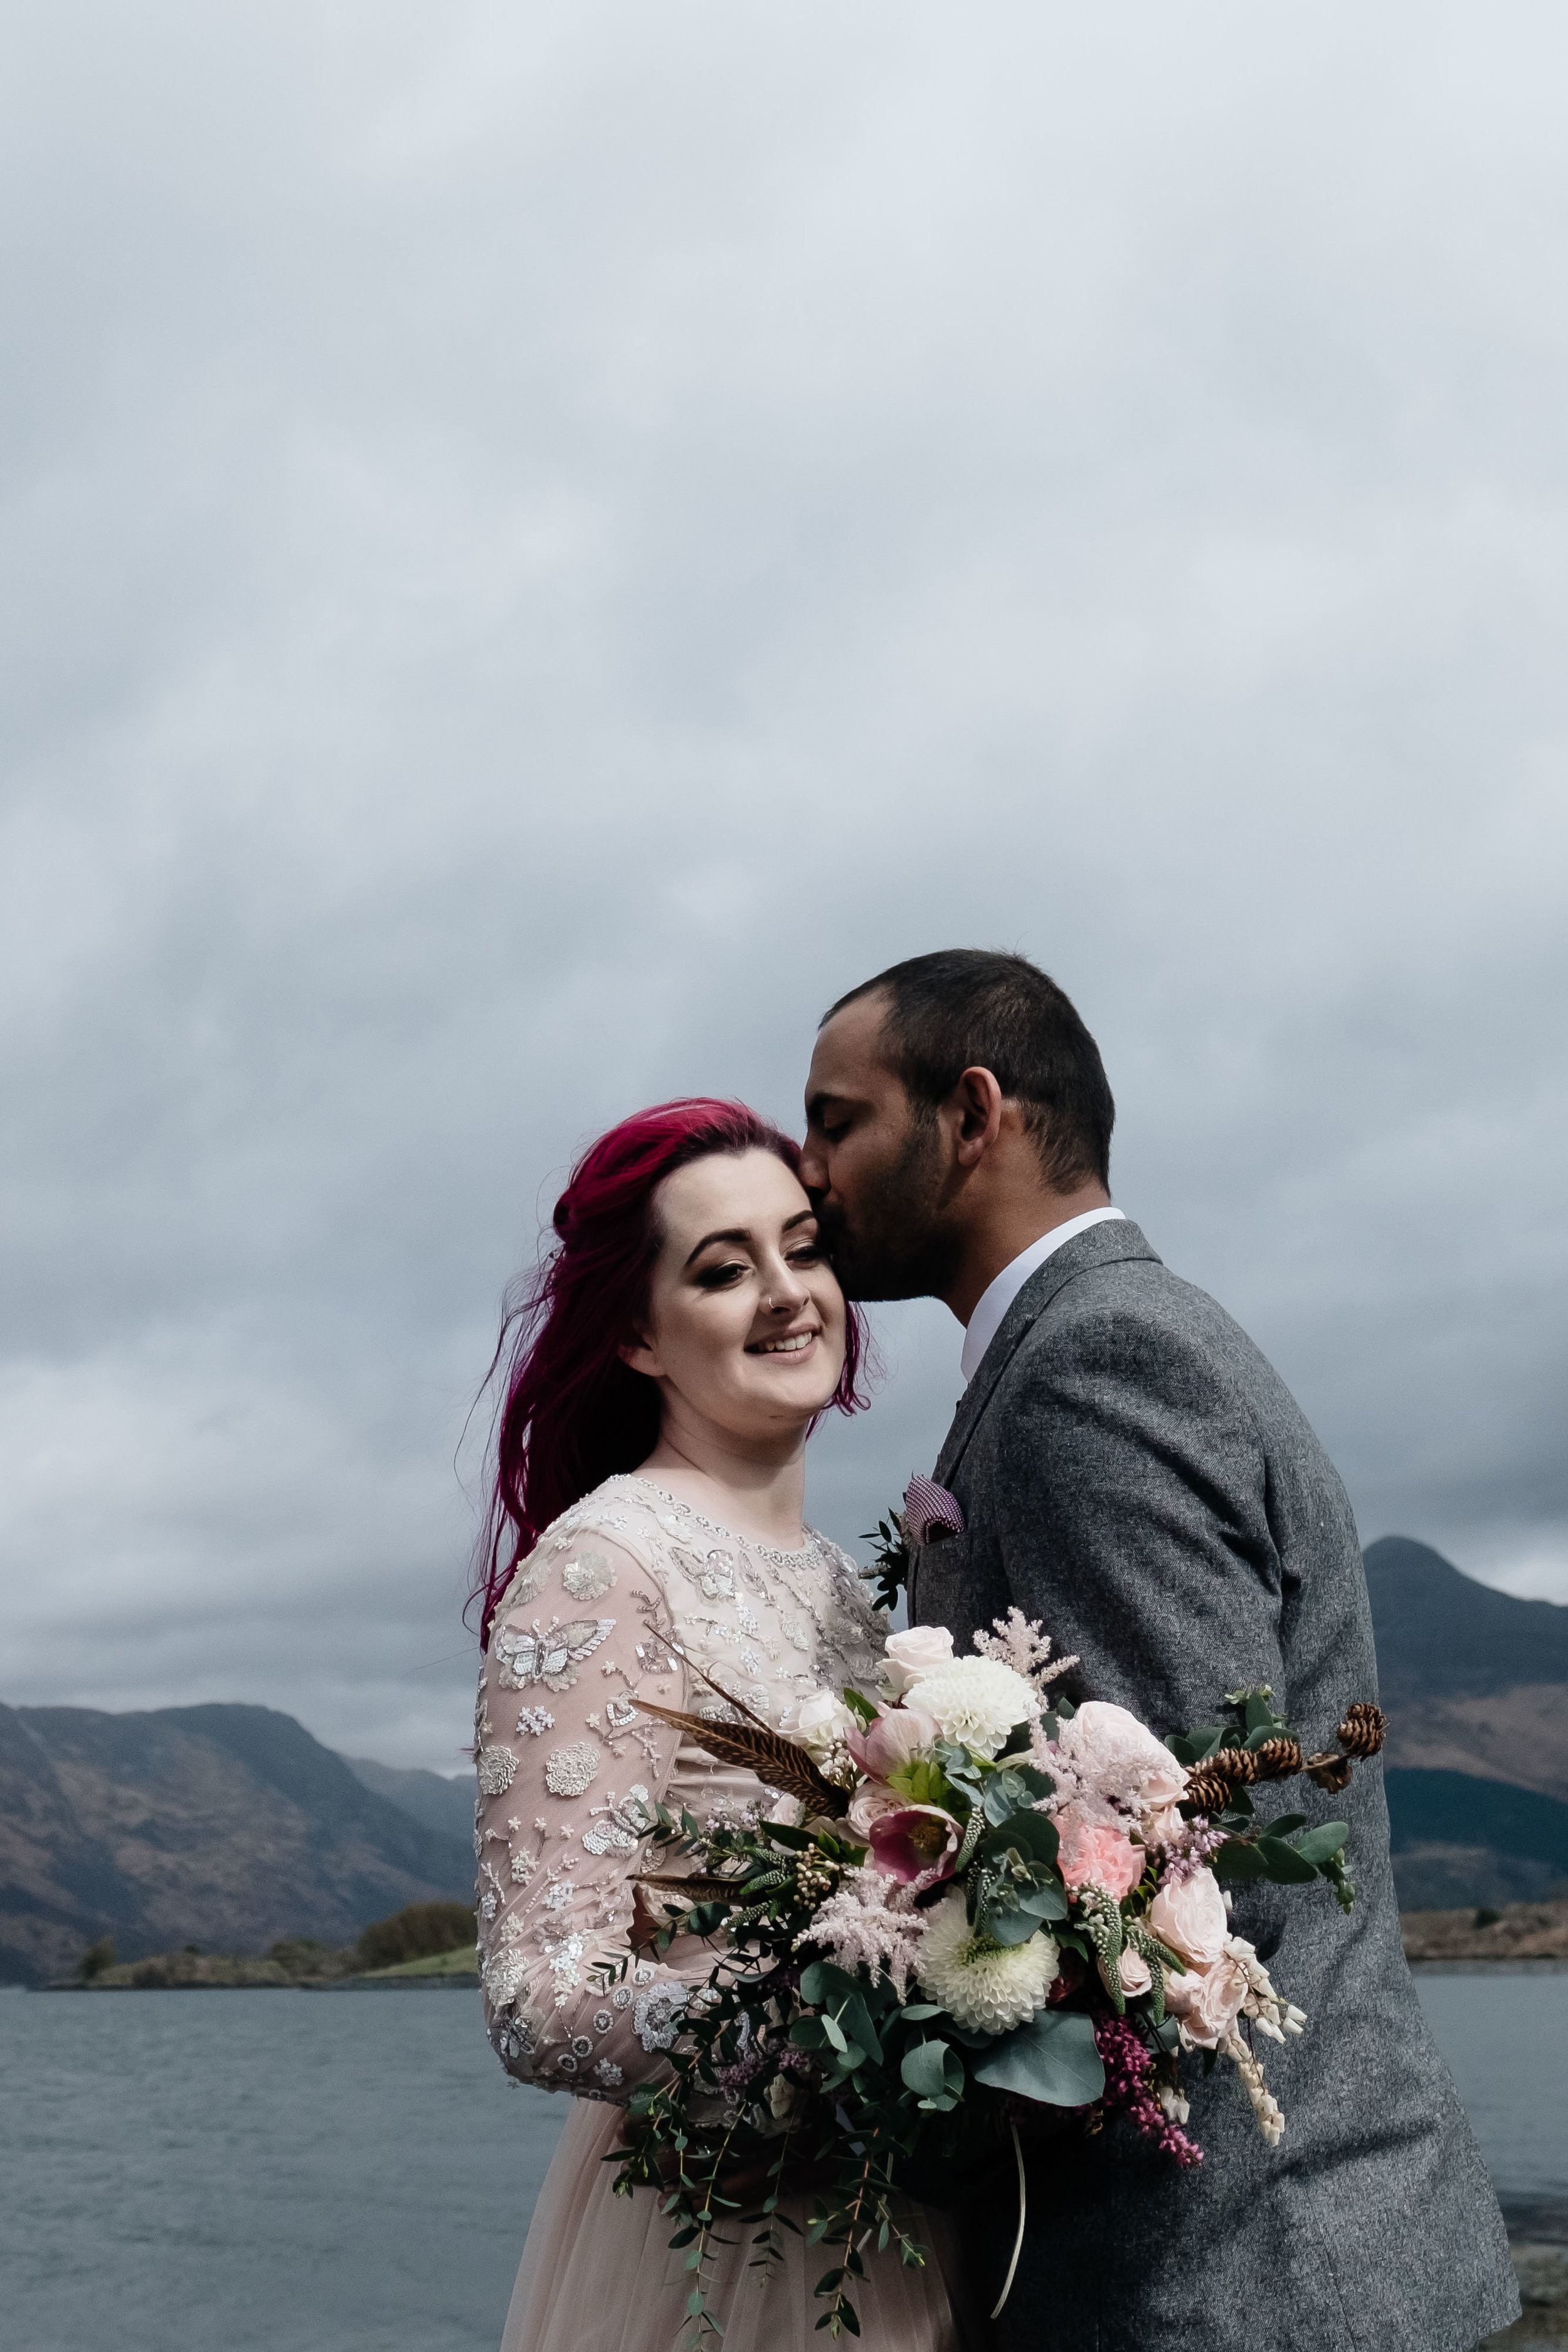 Groom kisses his bride following their Glencoe elopement.